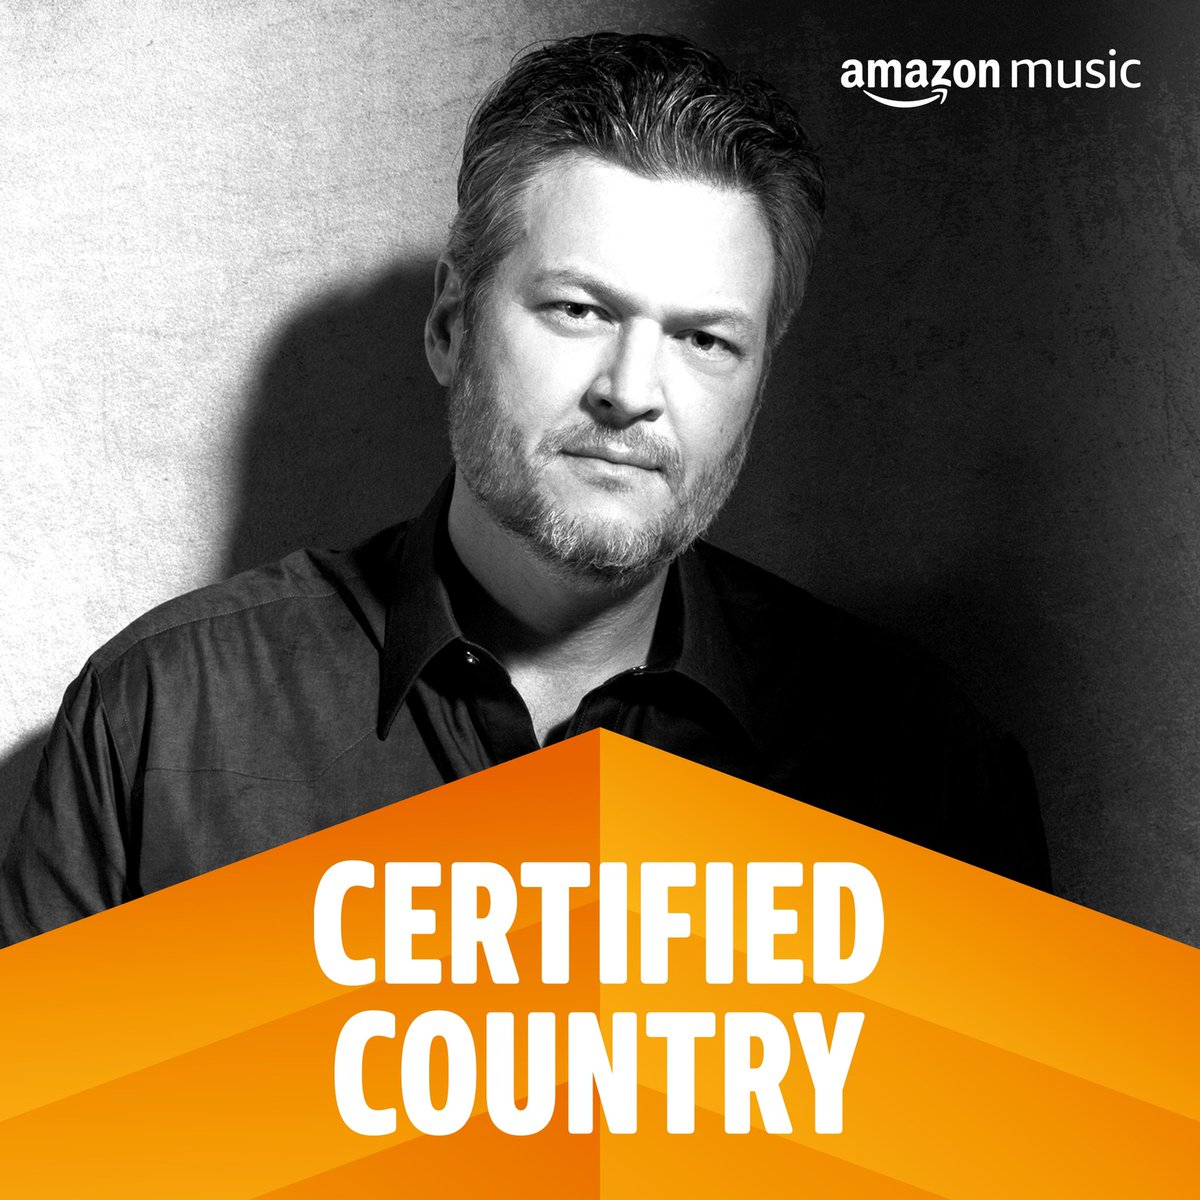 Minimum Wage = Certified Country… you heard it here from @amazonmusic!!! Thanks y'all.. Go listen!